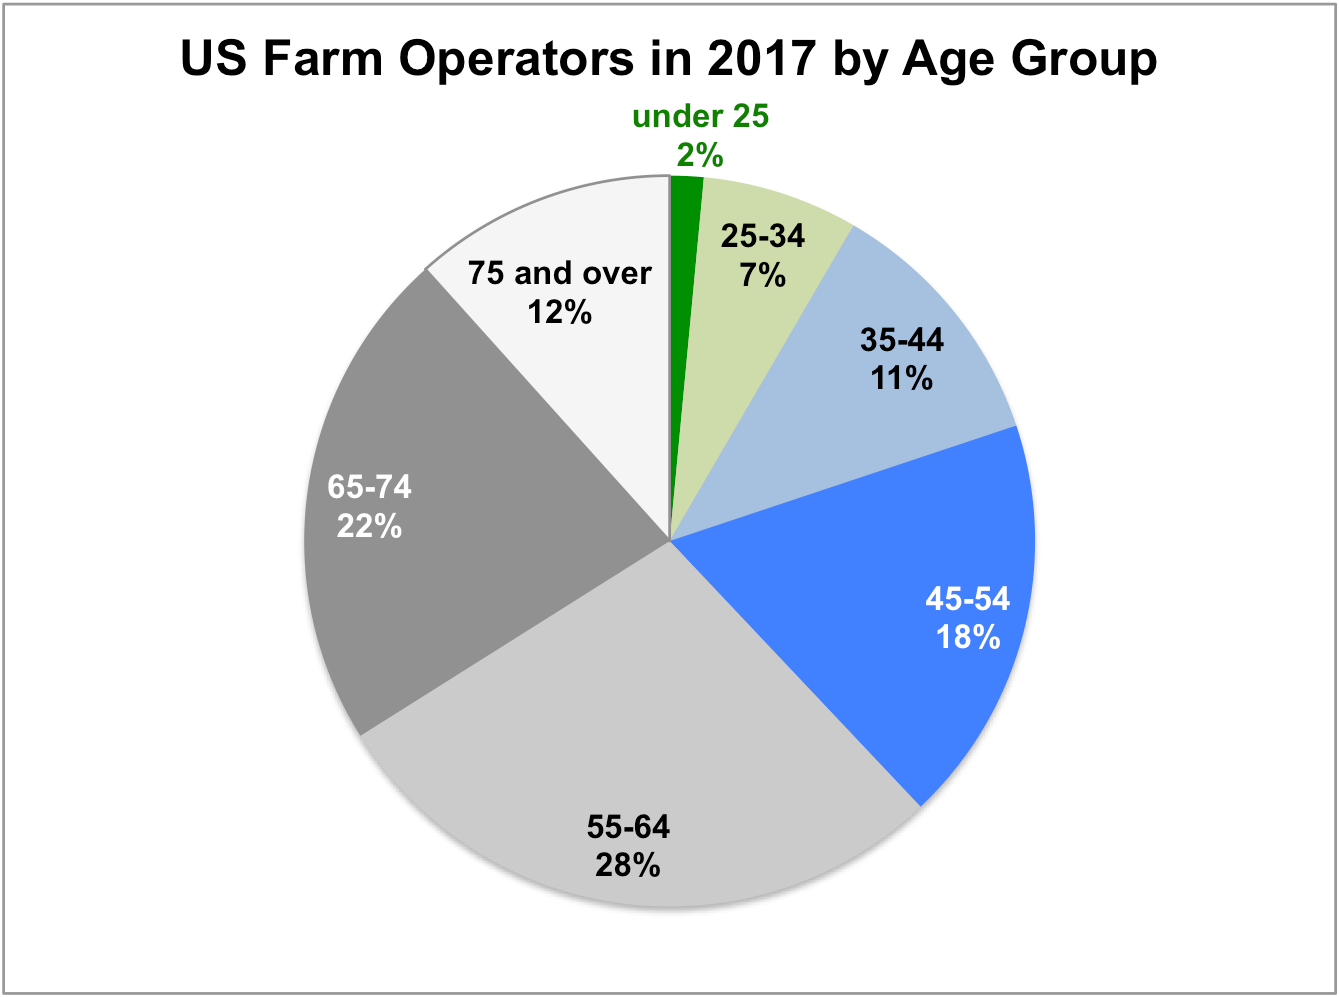 Based on the 2017 USDA Census of Agriculture